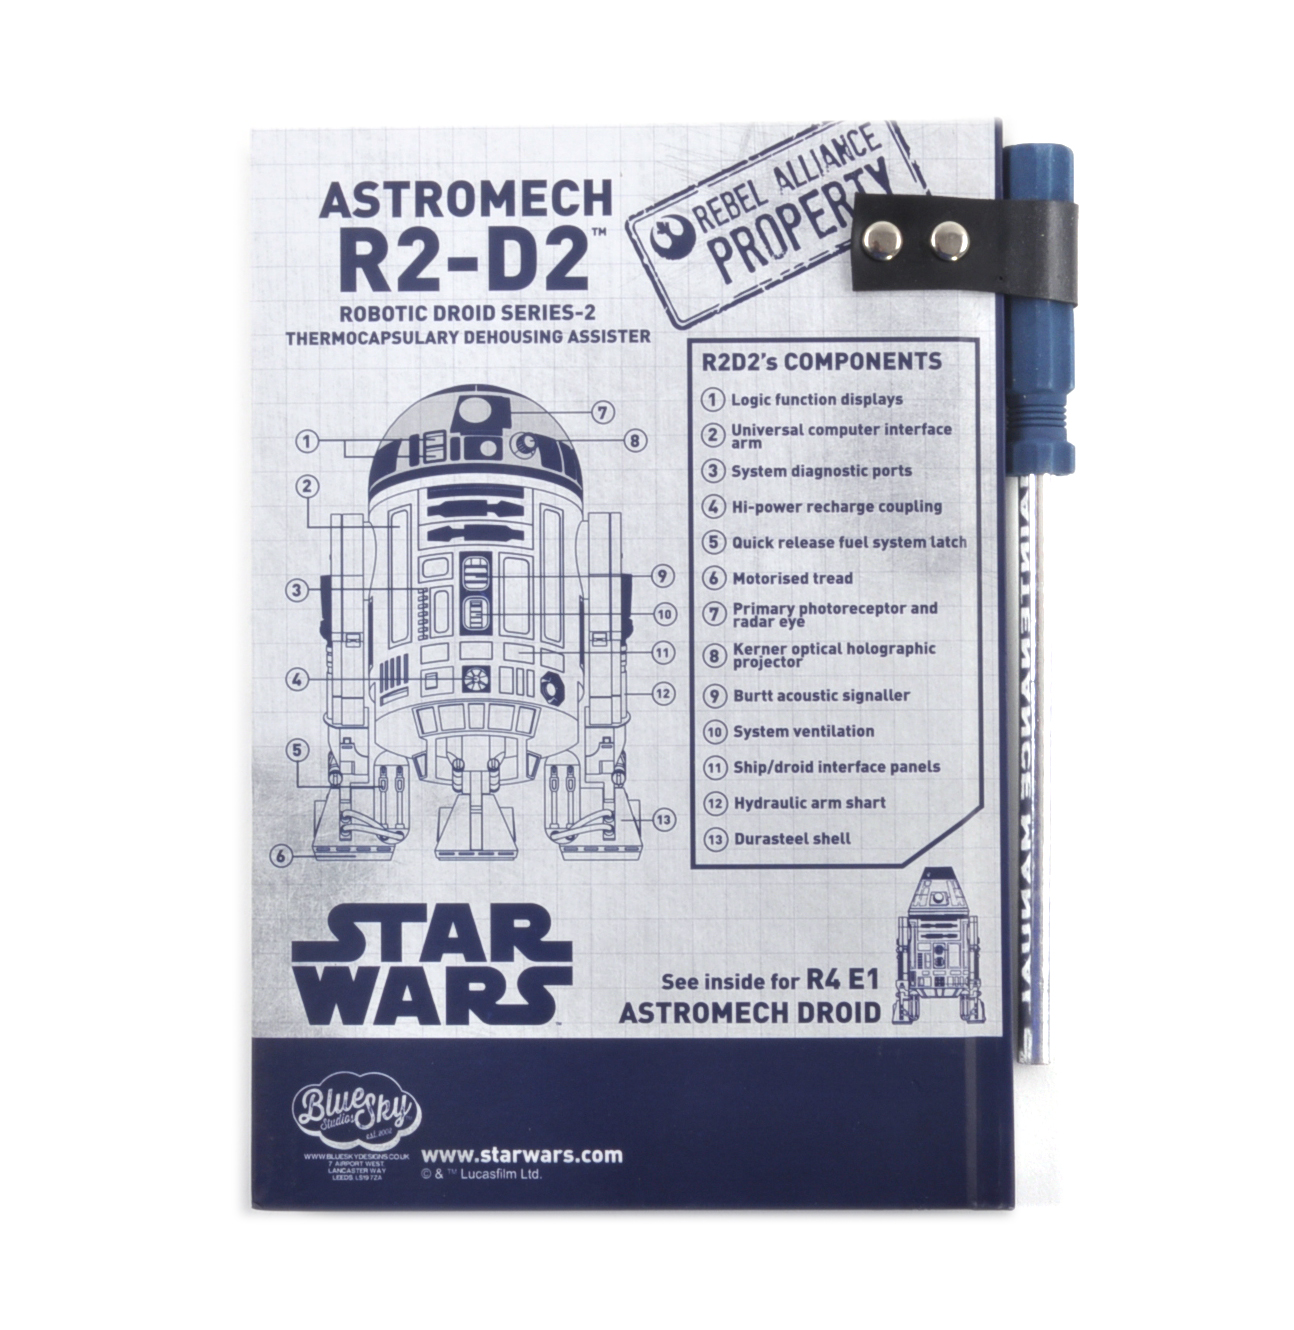 star wars r2 d2 droid maintenance manual notebook pink cat shop rh pinkcatshop com maintenance manual wheelchairs maintenance manual for cemco batcher 275